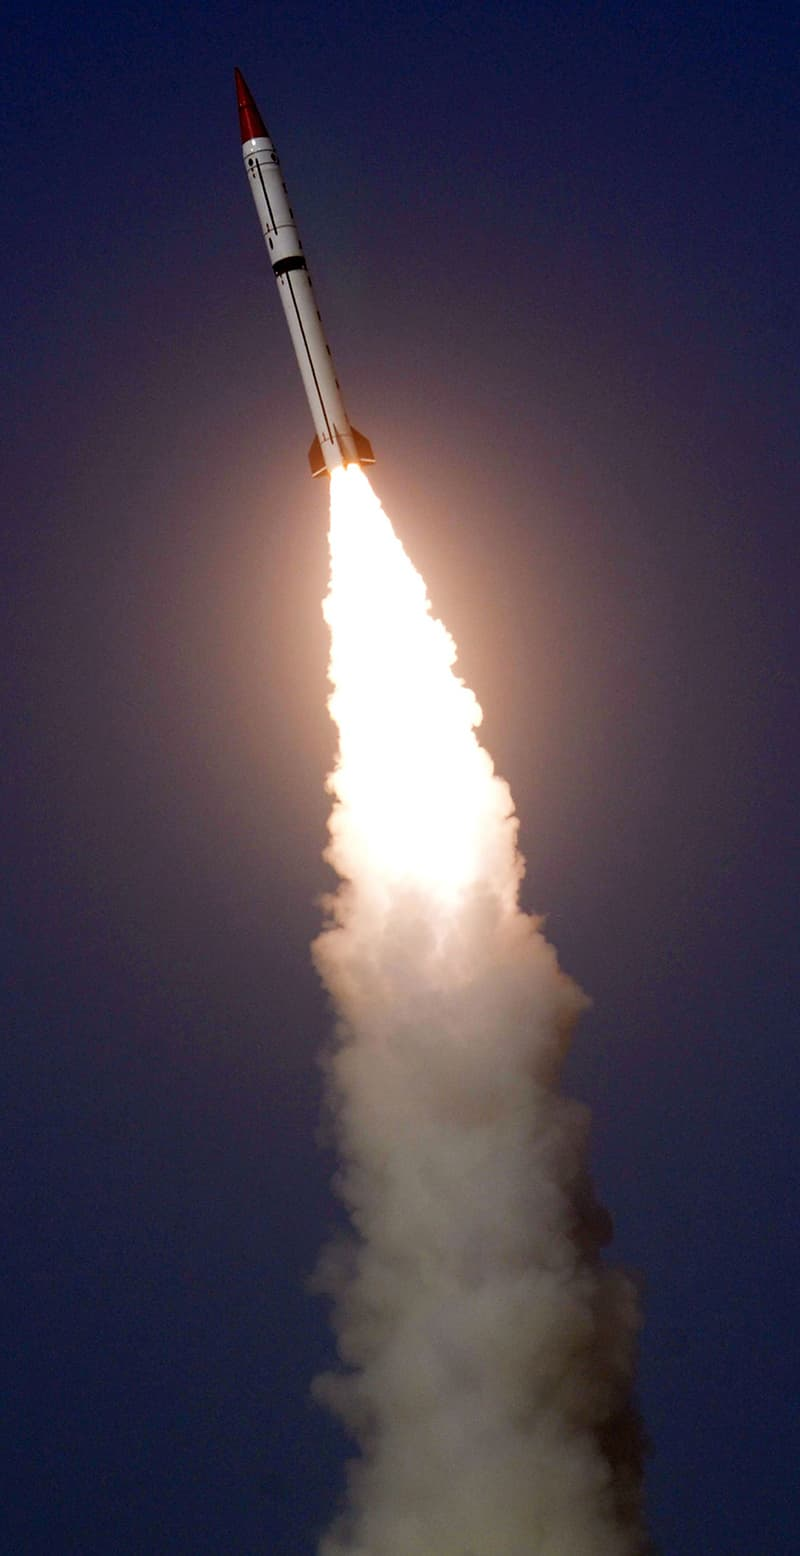 This handout photograph released by Pakistan's Inter Services Public Relations on Friday shows a Shaheen III surface-to-surface ballistic missile launching from an undisclosed location in Pakistan. –AFP